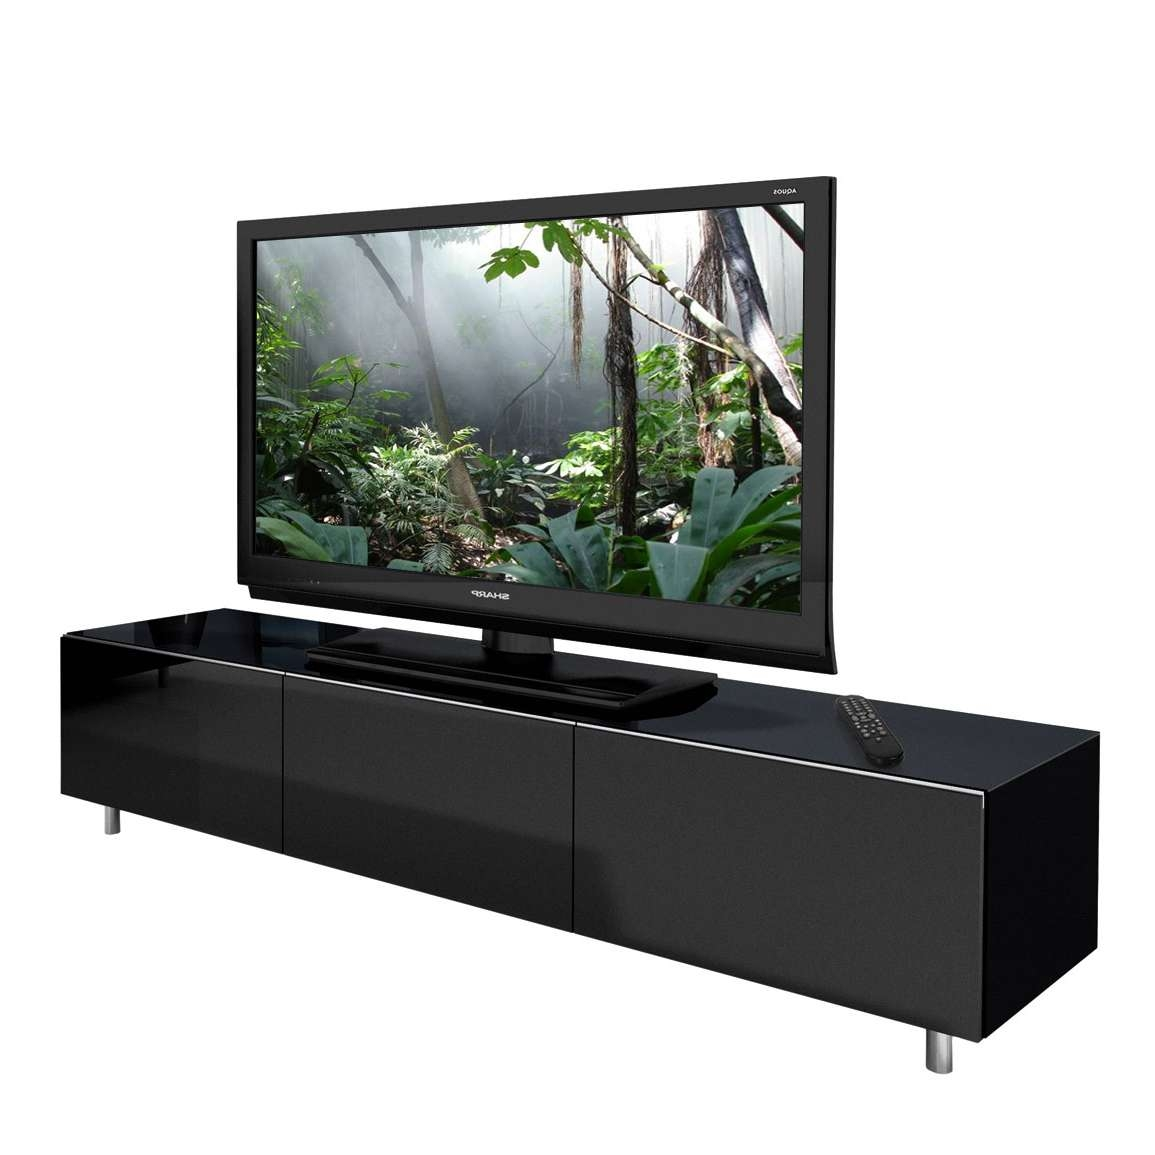 Black Long Tv Stand Incredible Photos Inspirations Wooden Rustic Throughout Extra Long Tv Stands (View 3 of 20)